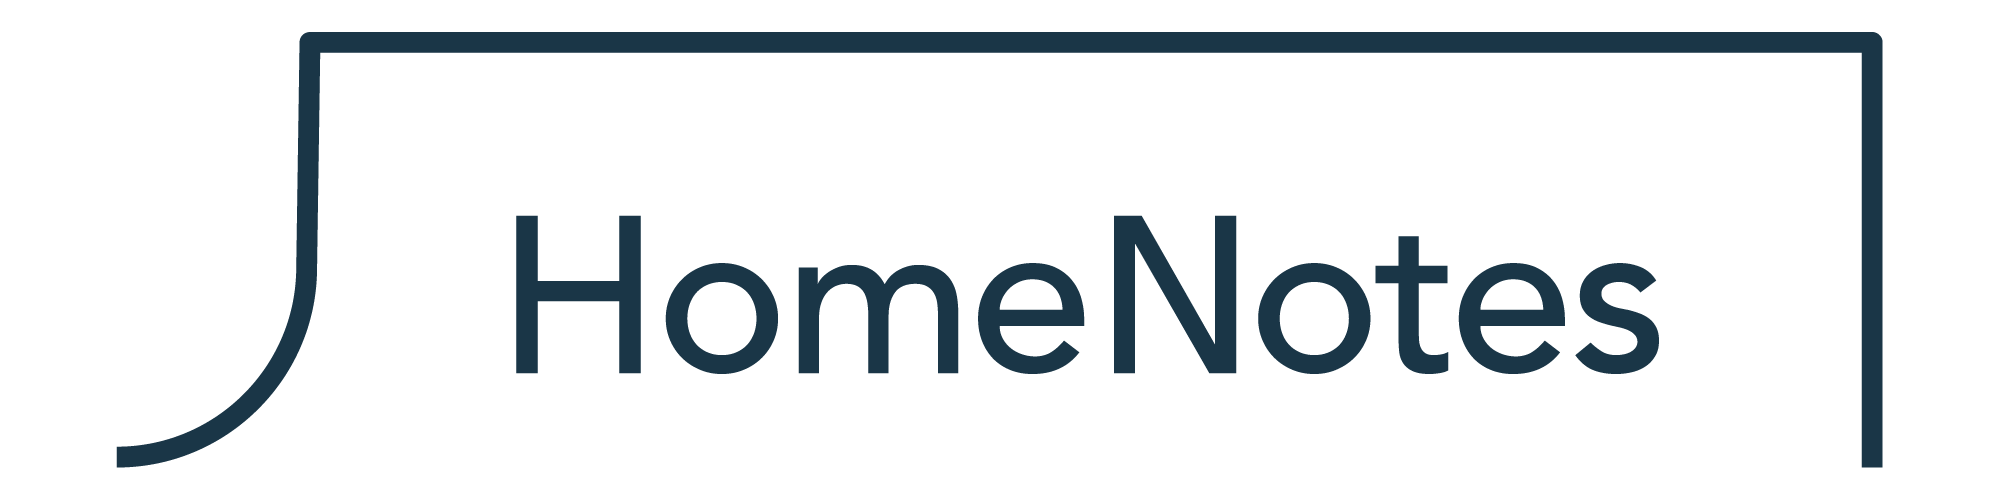 Home-Notes-Logo